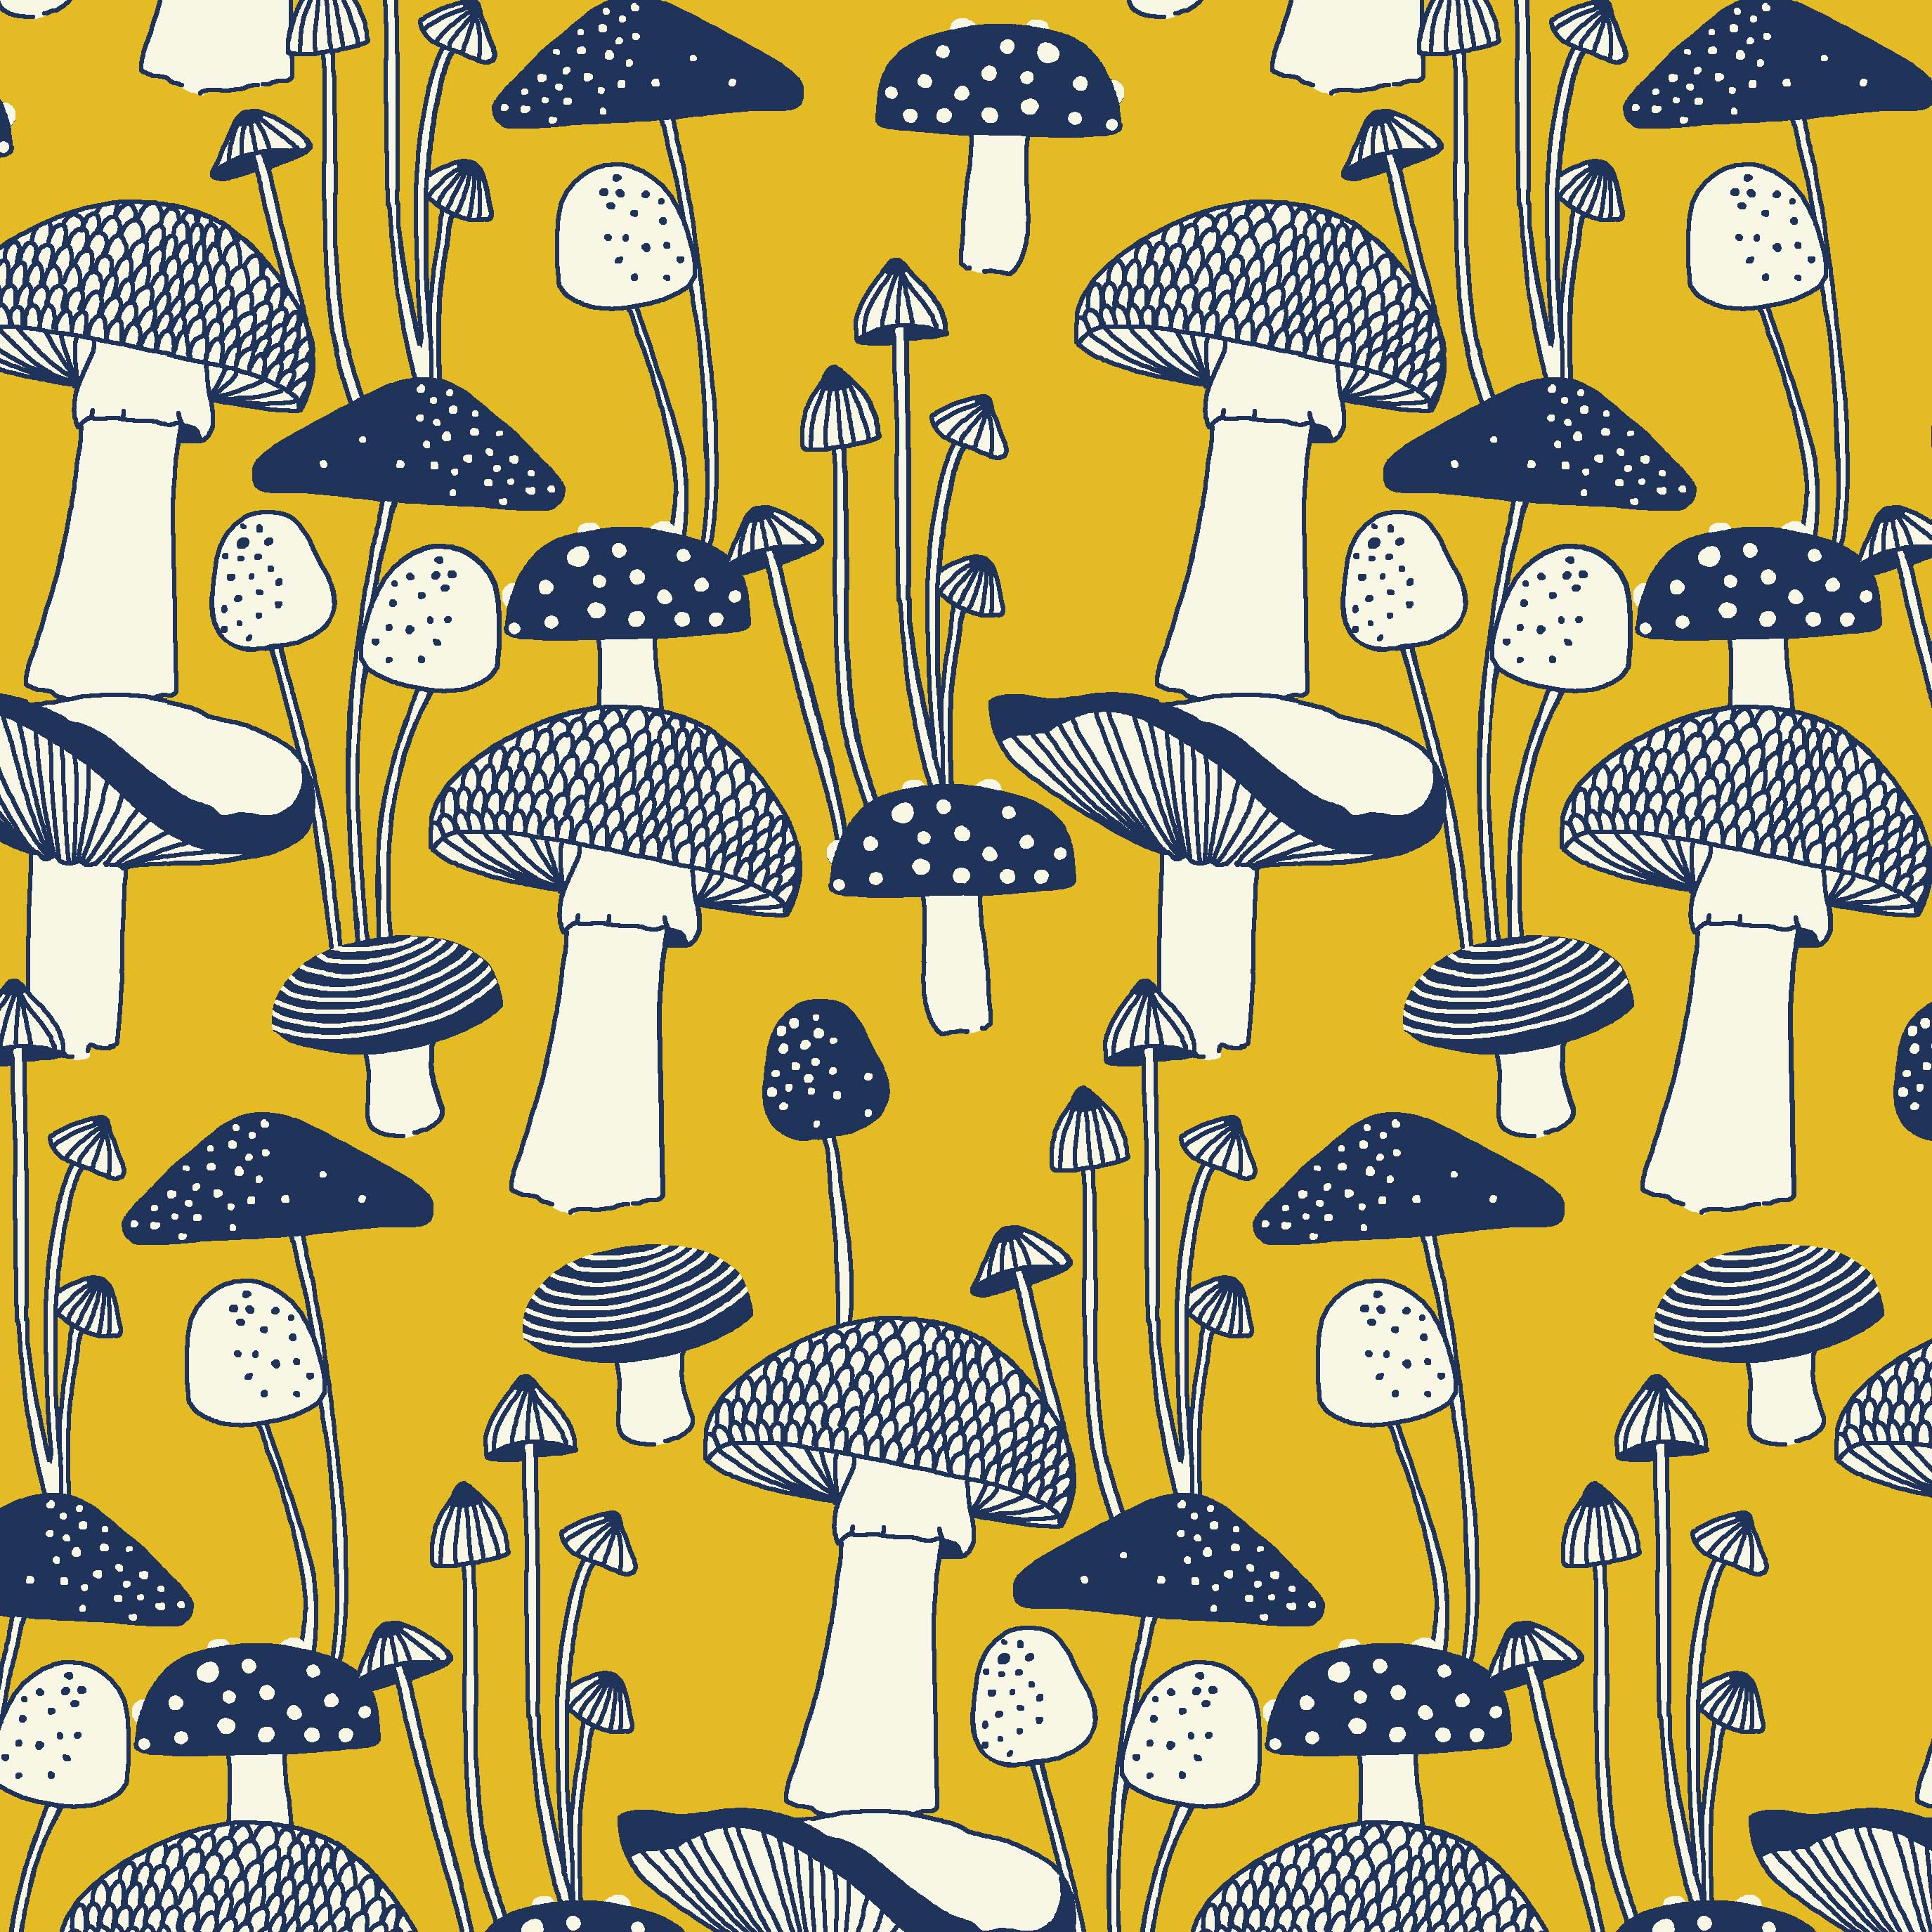 Mushrooms illustrative textile design for fabric and surface design, Textile Designs, Surface Designs, Illustration, textildesign, stoffdesign